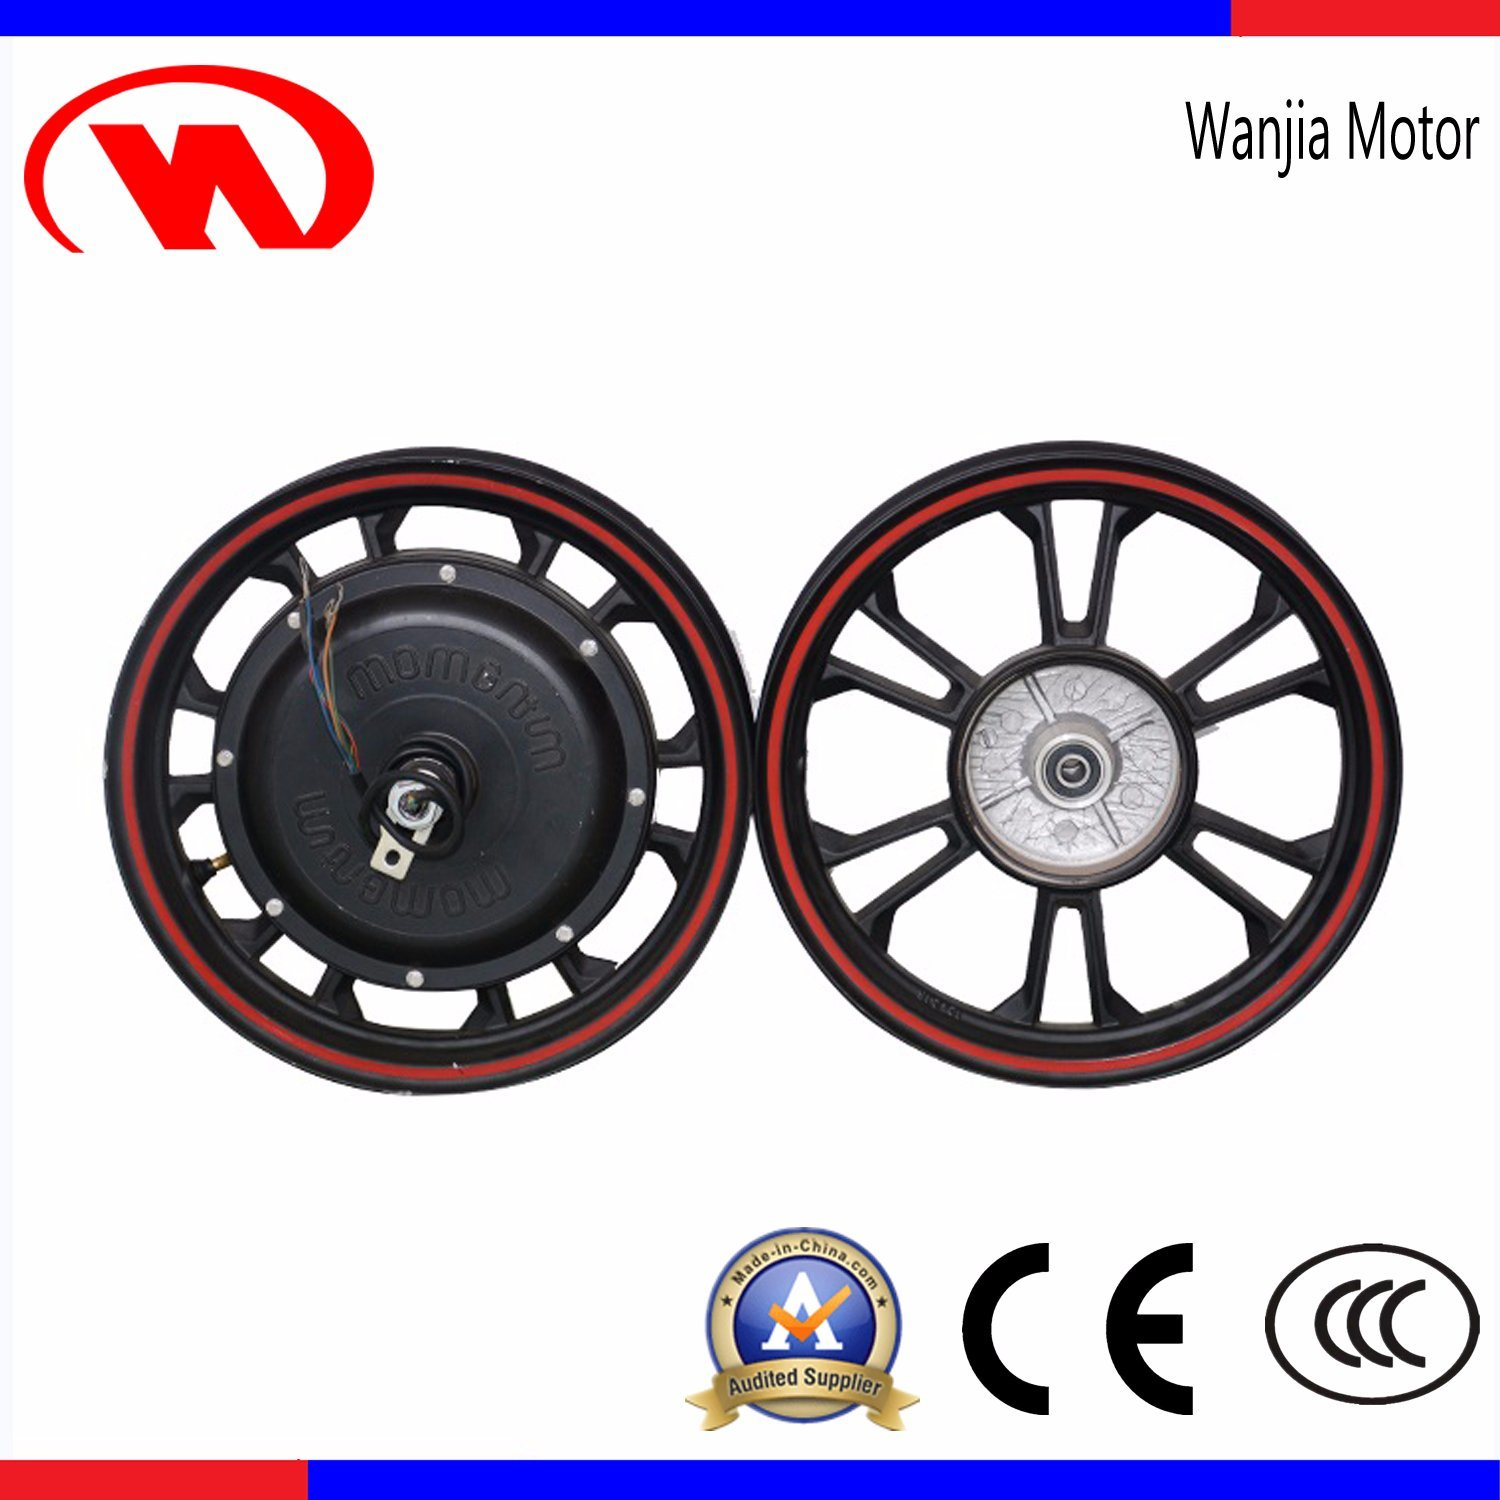 22 Inch 133s Brushless Hub Motor for Electric Bike